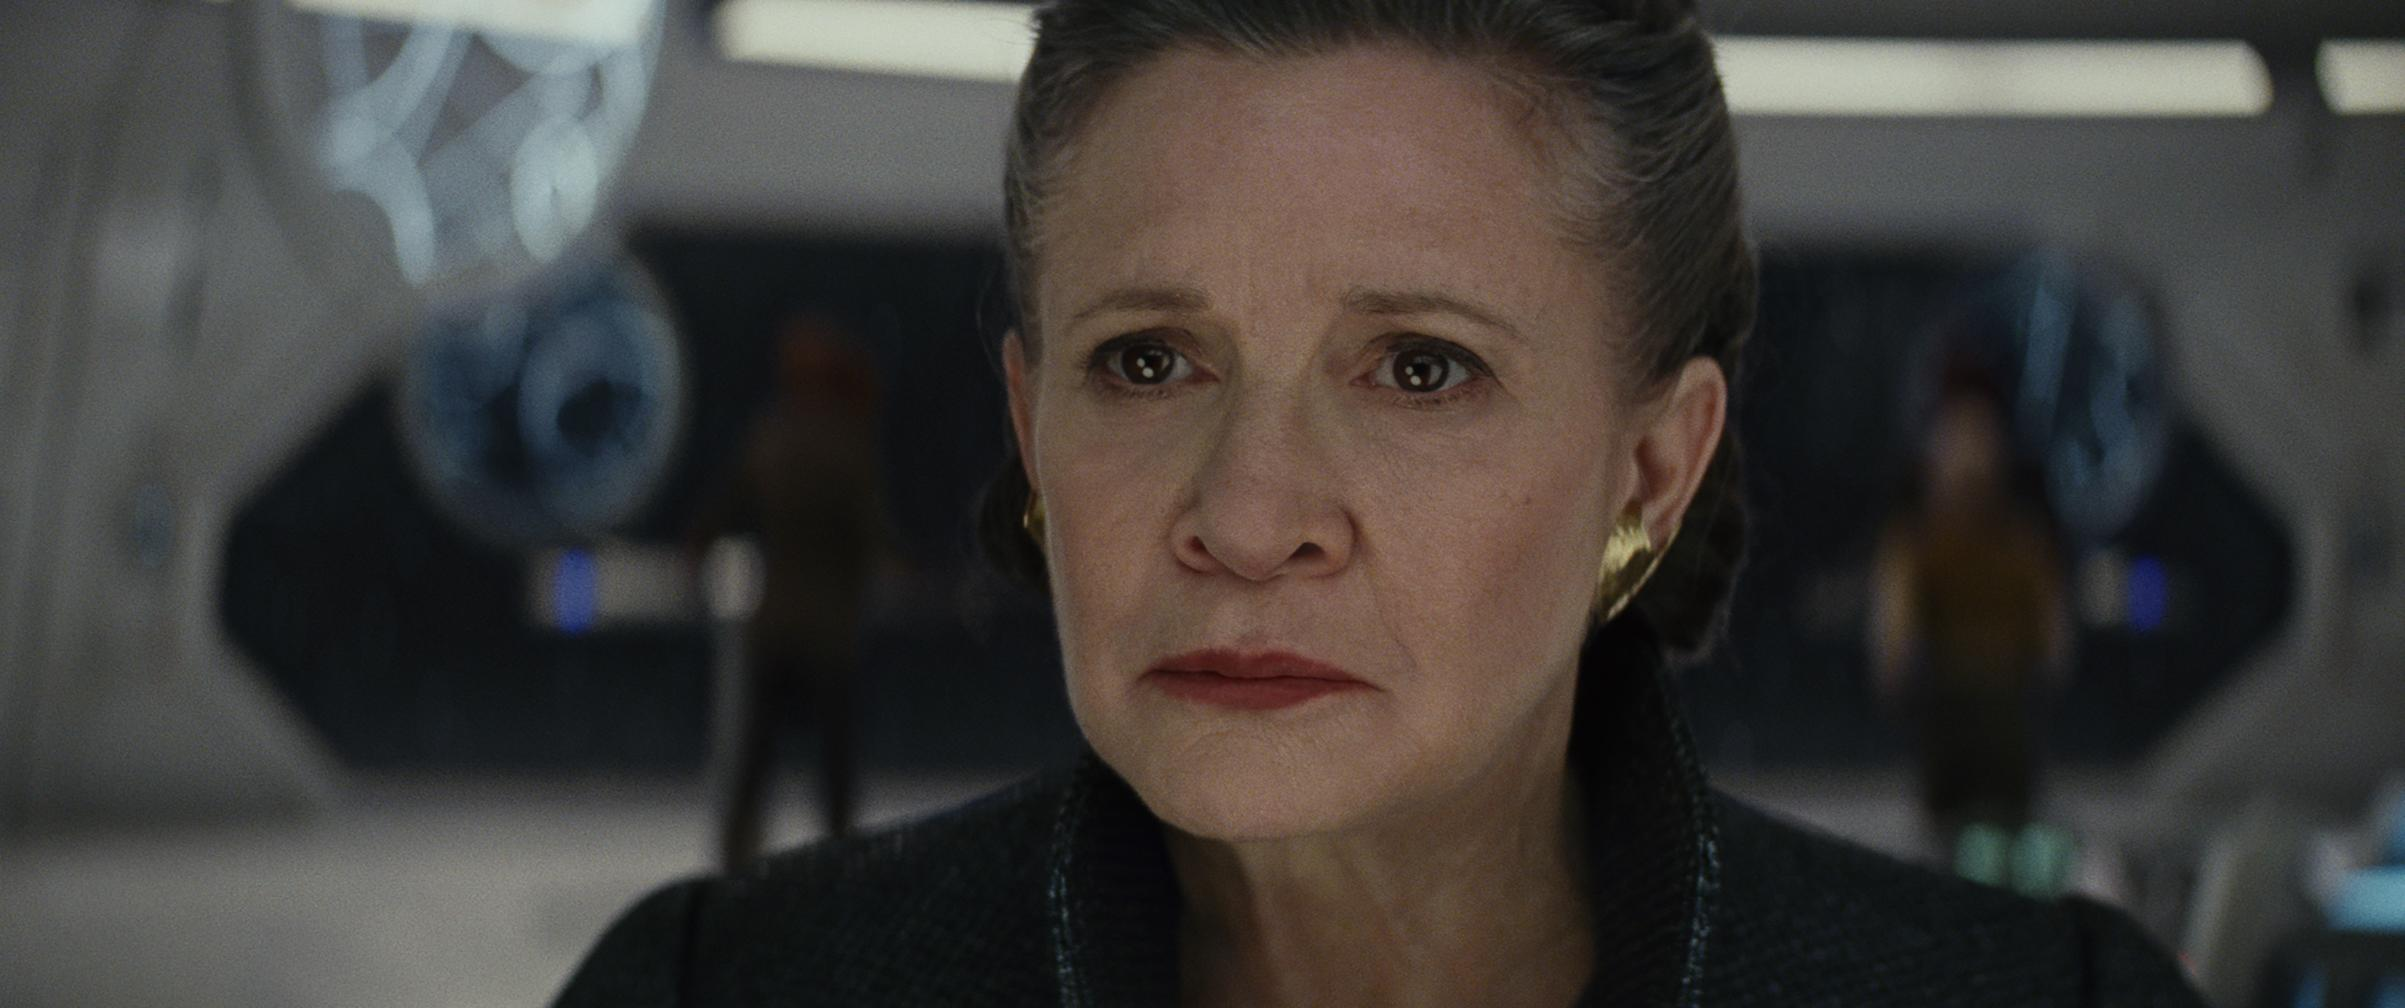 Princess Leia will be in 'Star Wars: Episode IX': 'We have found a way to honor Carrie's legacy'